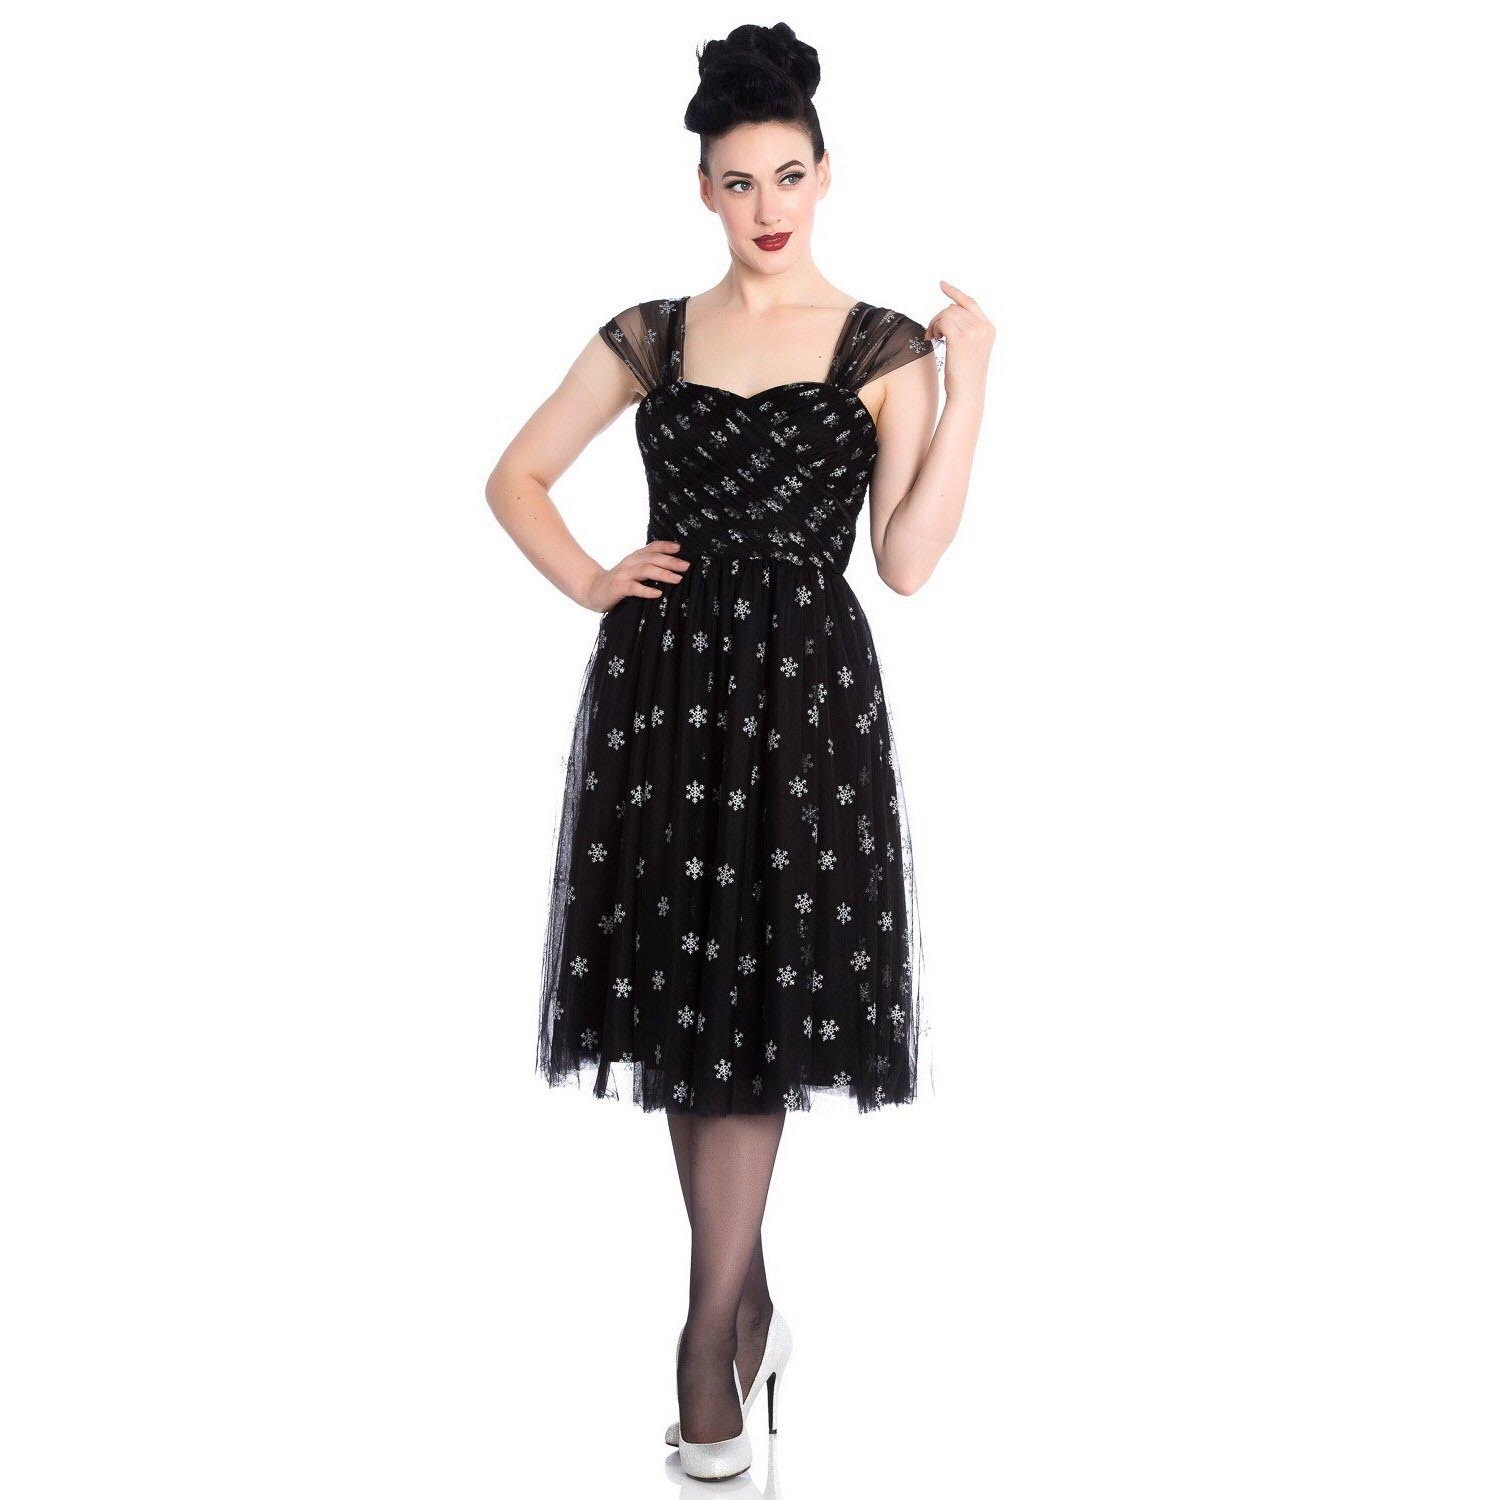 Hell-Bunny-50s-Black-Christmas-Dress-SNOWSTAR-Glitter-Snowflakes-All-Sizes thumbnail 15